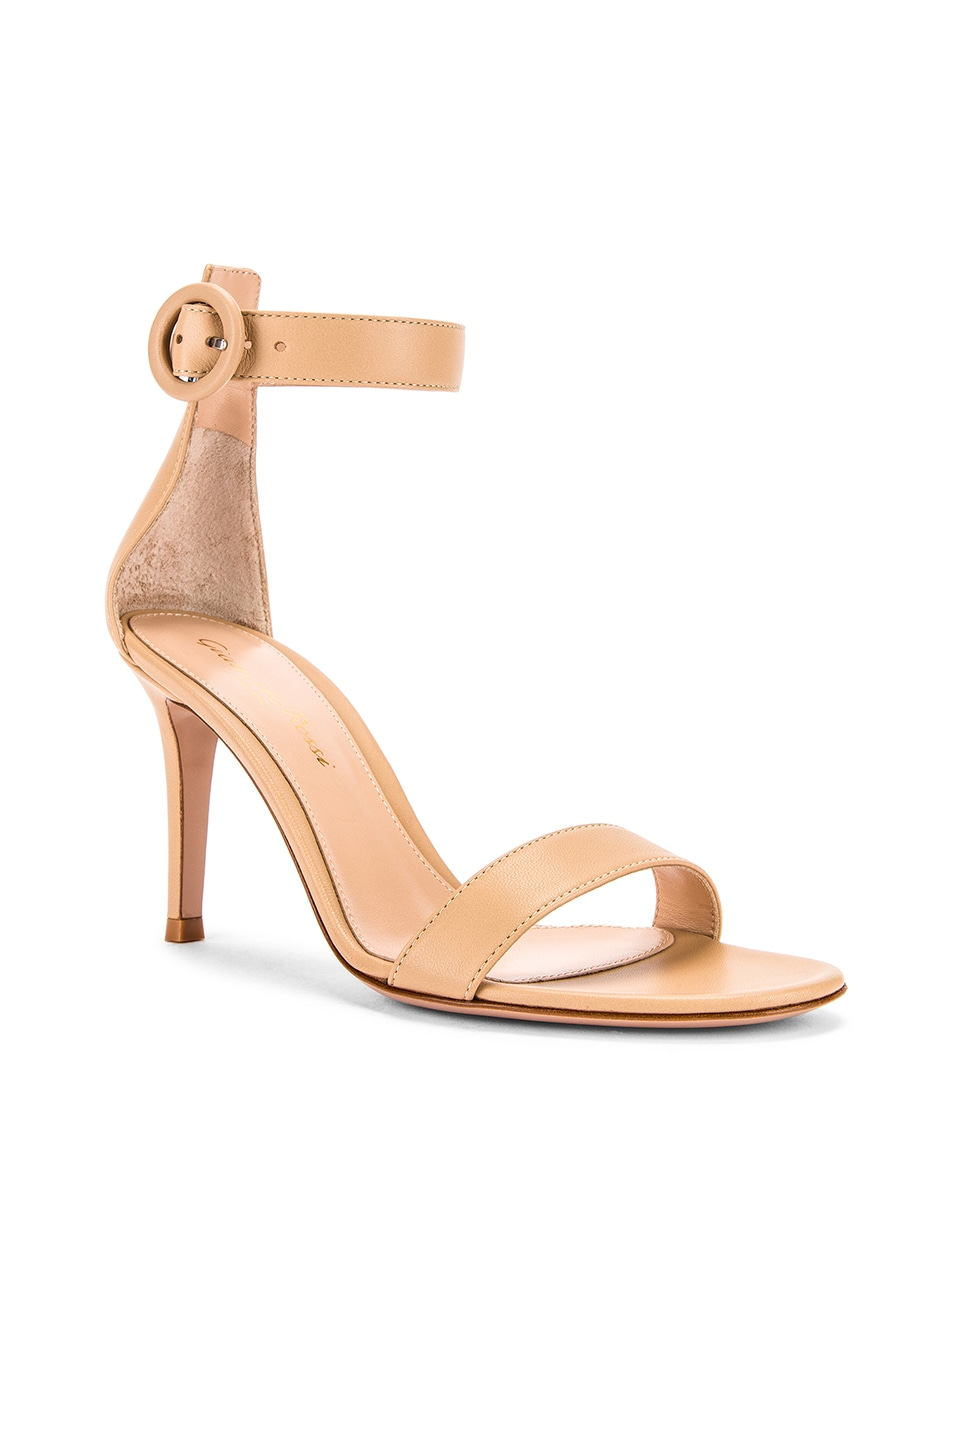 Image 2 of Gianvito Rossi Leather Portofino Heels in Nude